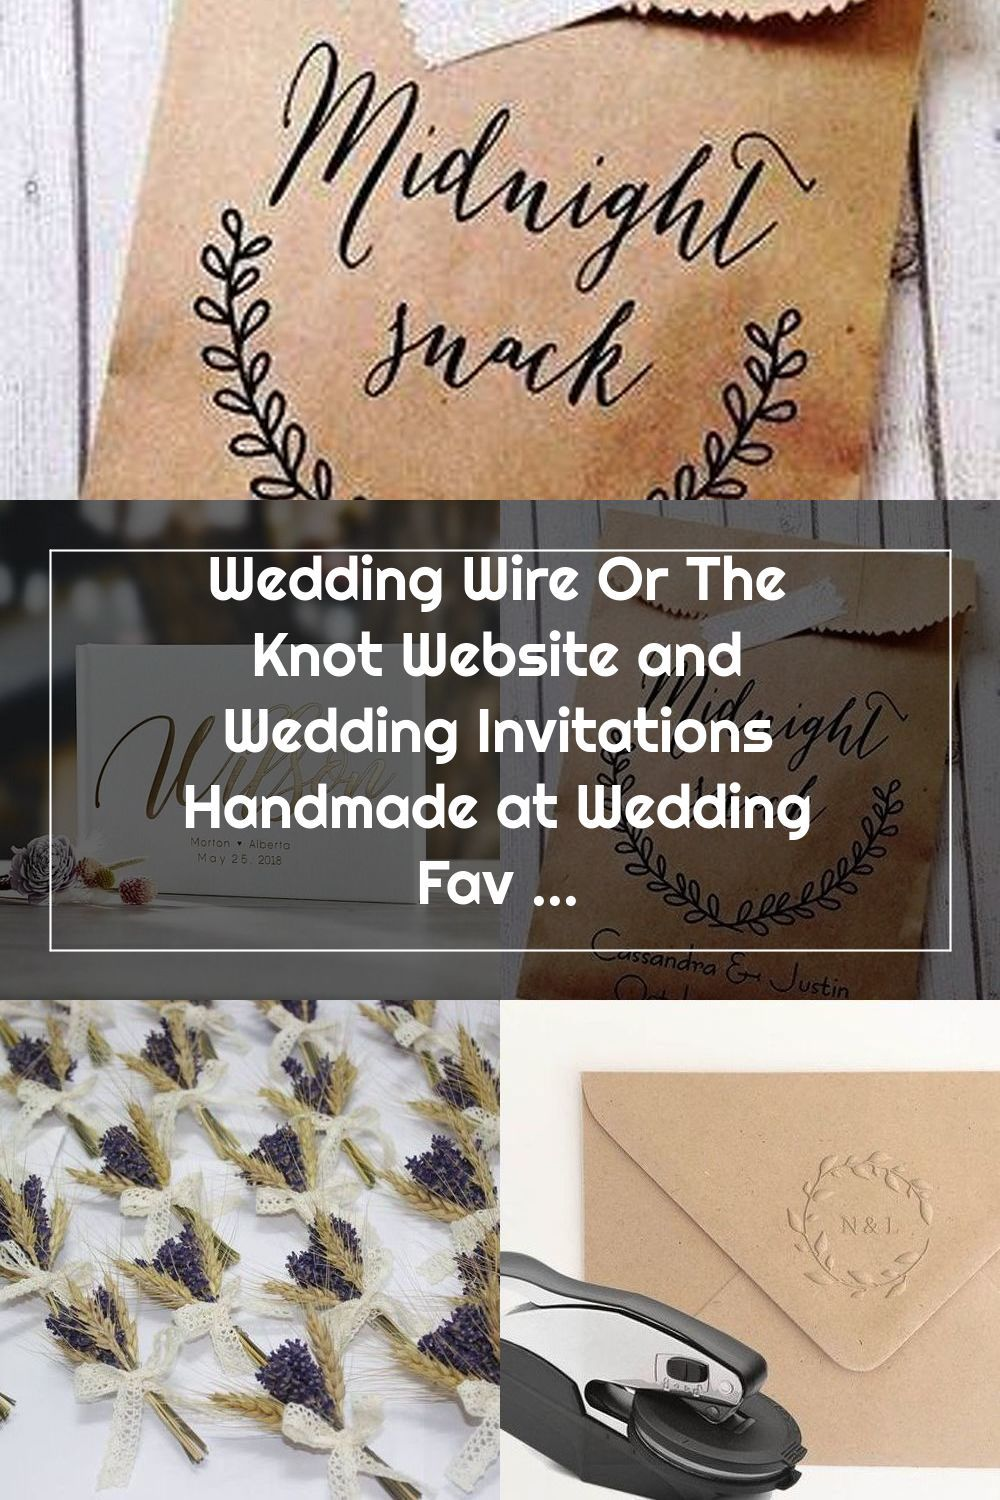 Wedding Wire Or The Knot Website And Wedding Invitations Handmade At Weddin In 2020 The Knot Website Wedding Invitations Wedding Favor Labels